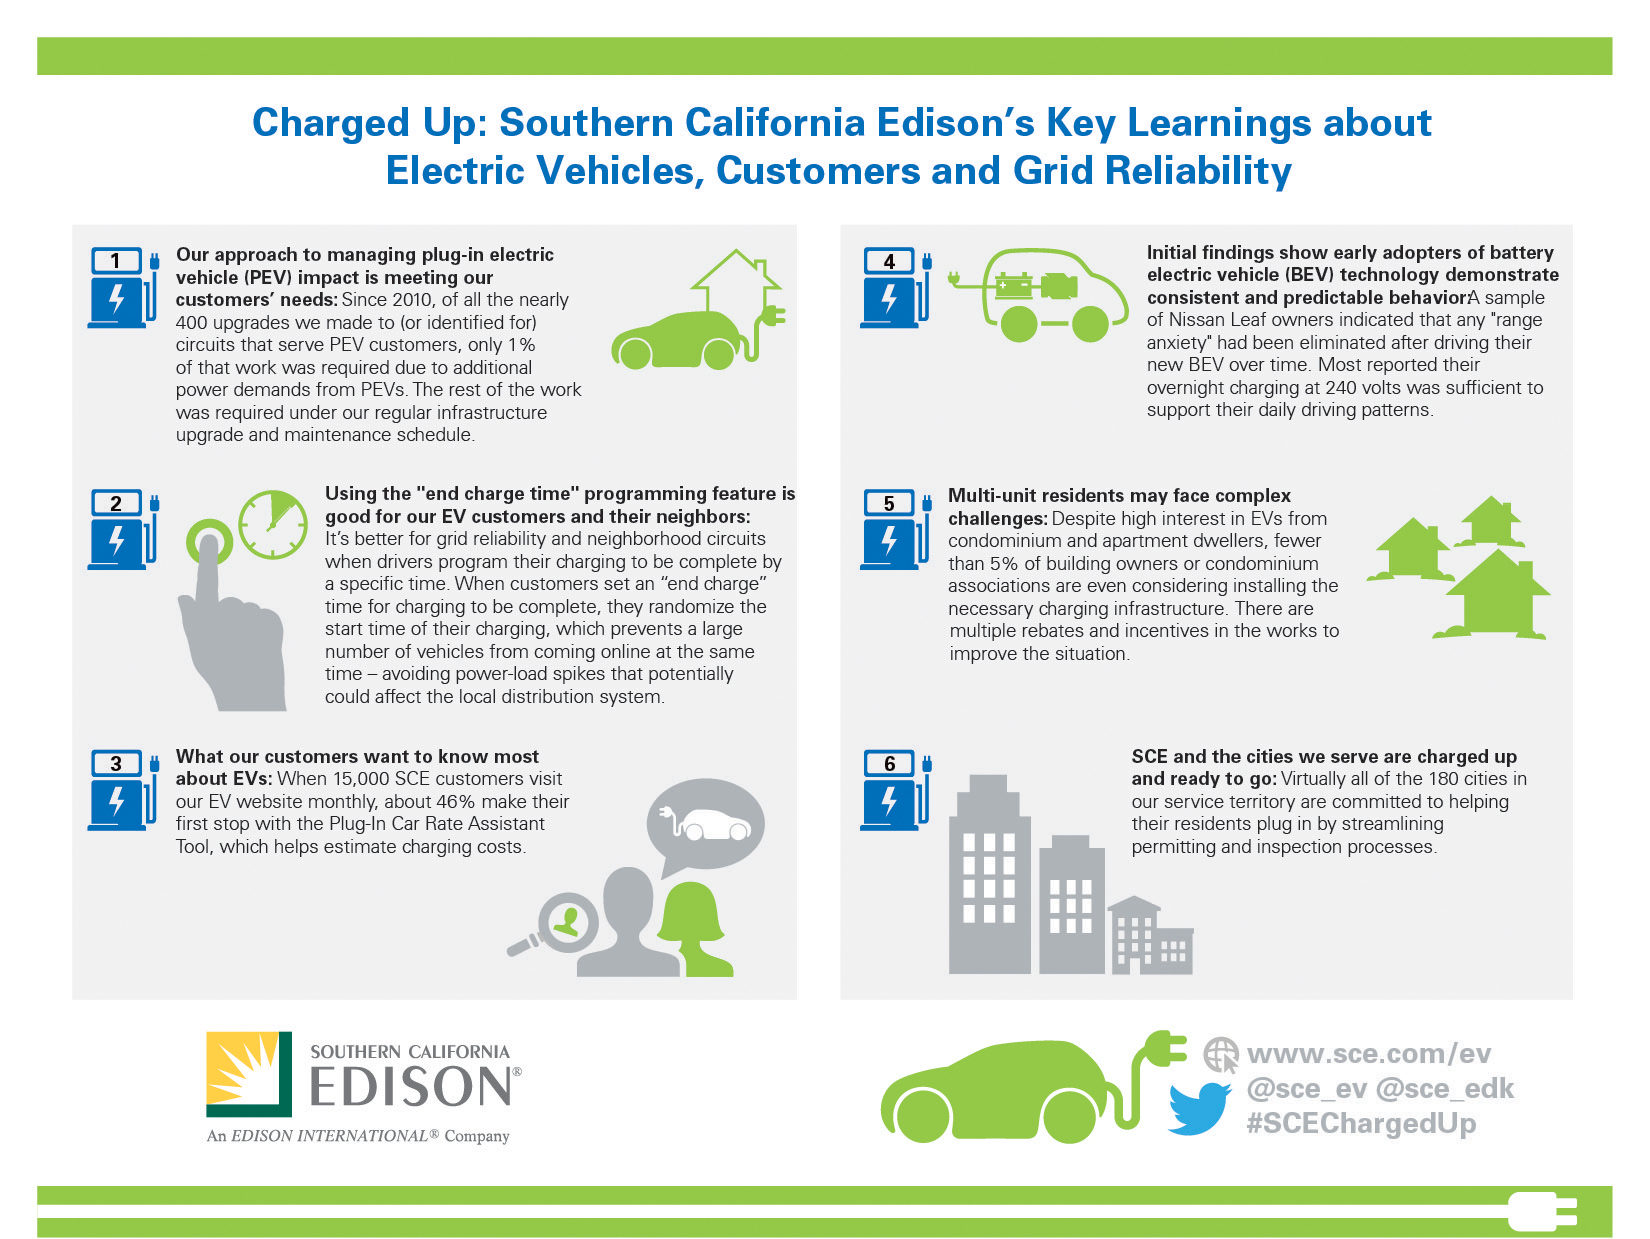 Southern California Electric >> Southern California Edison Offers Insights About Its Electric